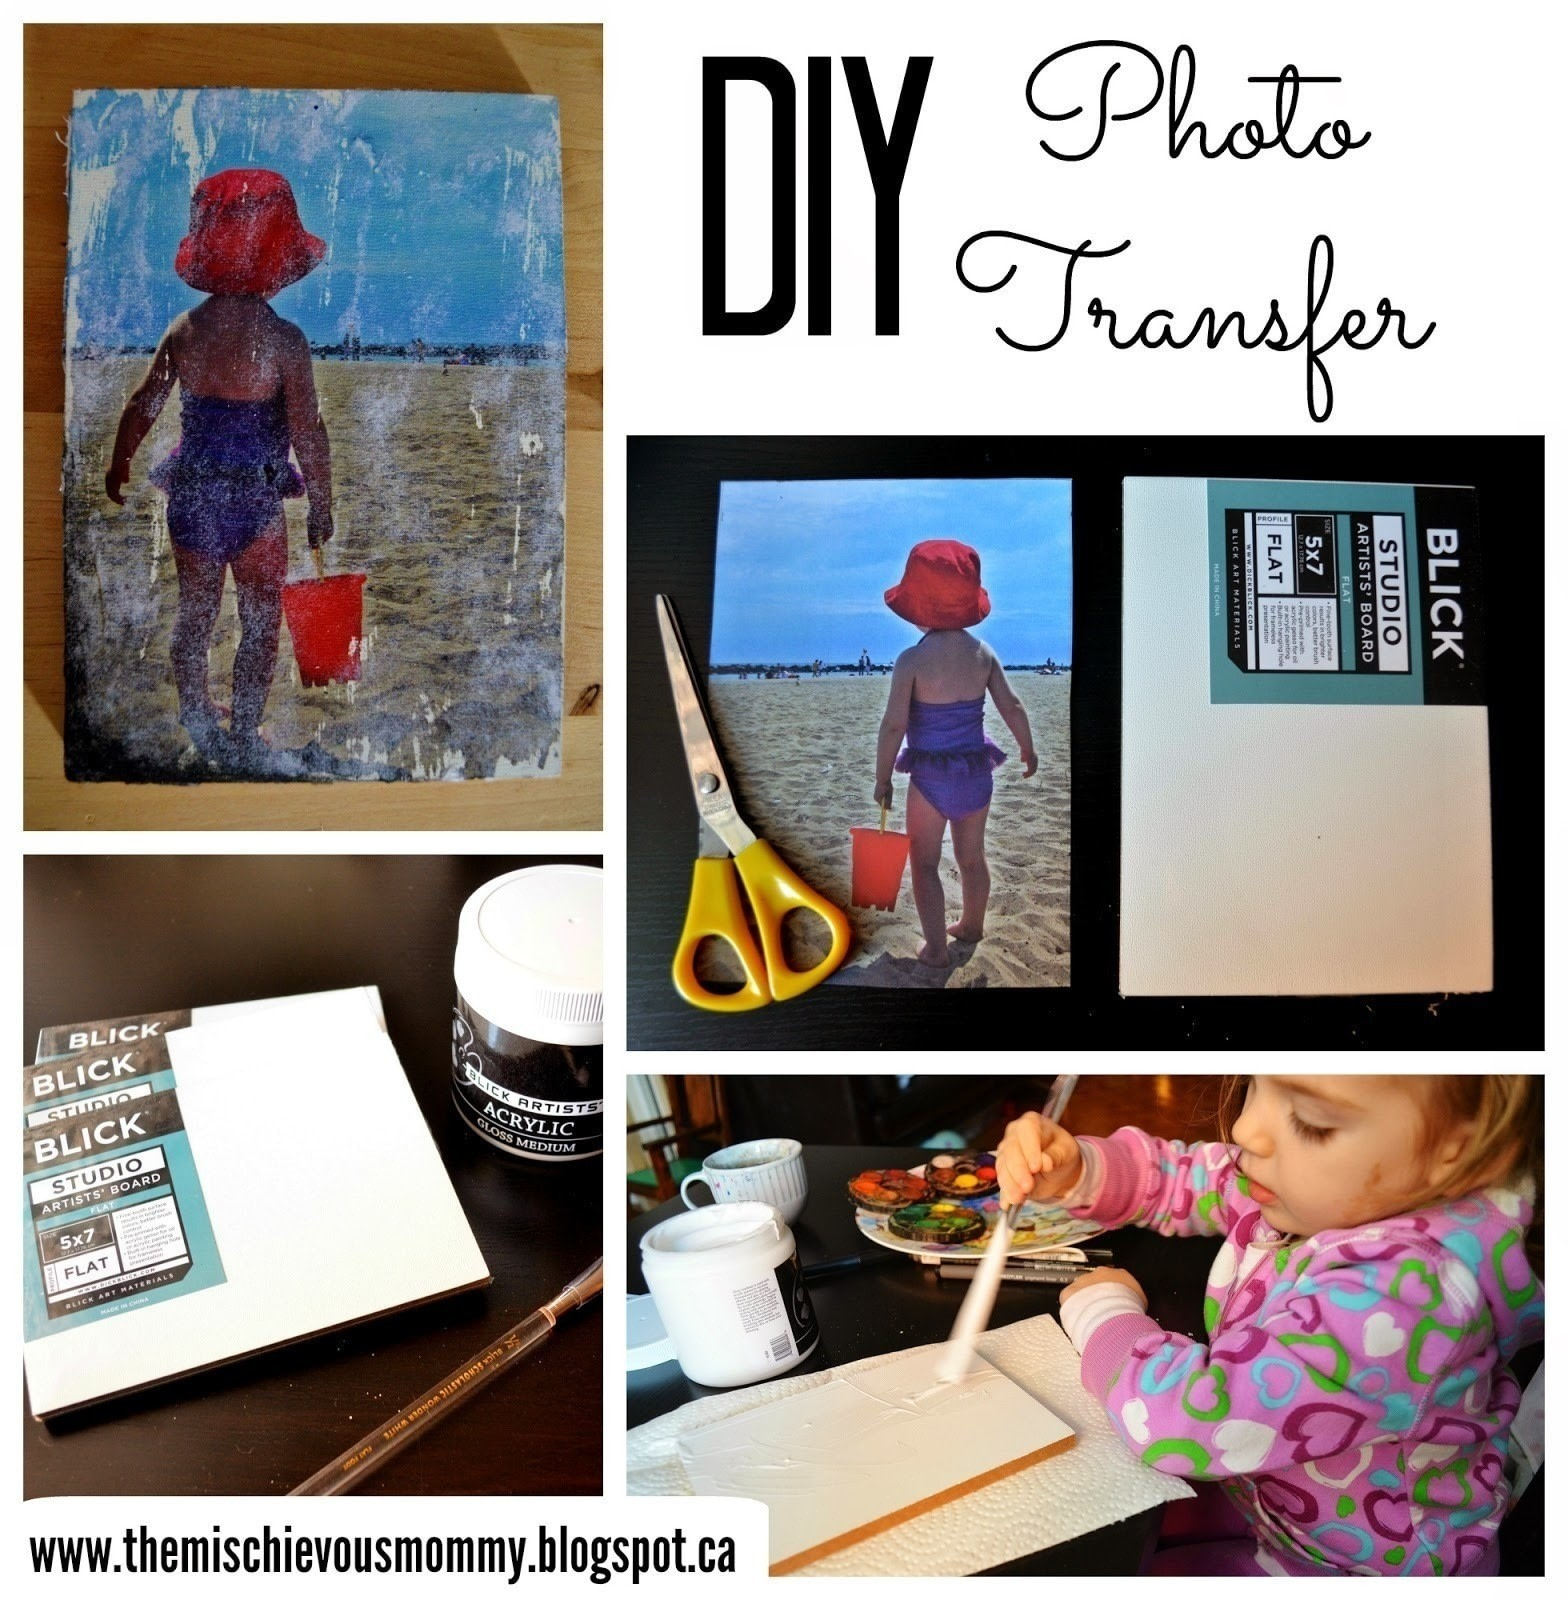 Diy Photo Transfer How To Make A Transfers Art On Cut